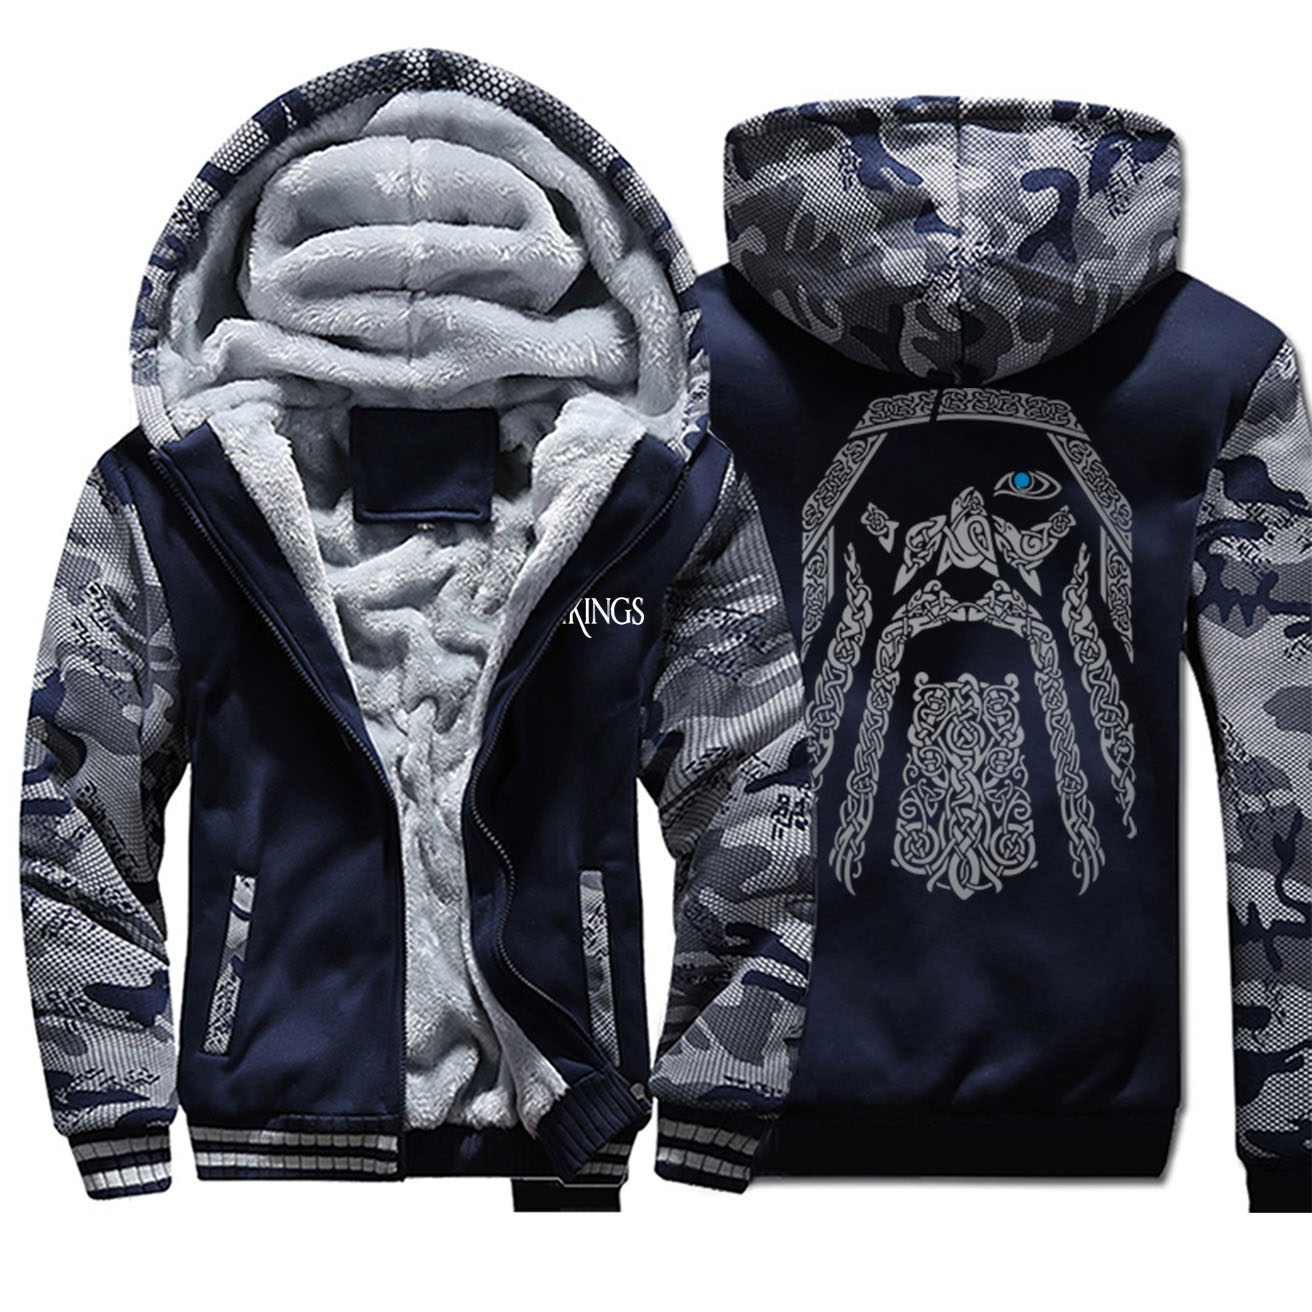 2019 New Odin Vikings Camo Hoodie Men Fashion Viking Sportswear Retro Casual Hip Hop Streetwear Autum Men'S Outwear Coats